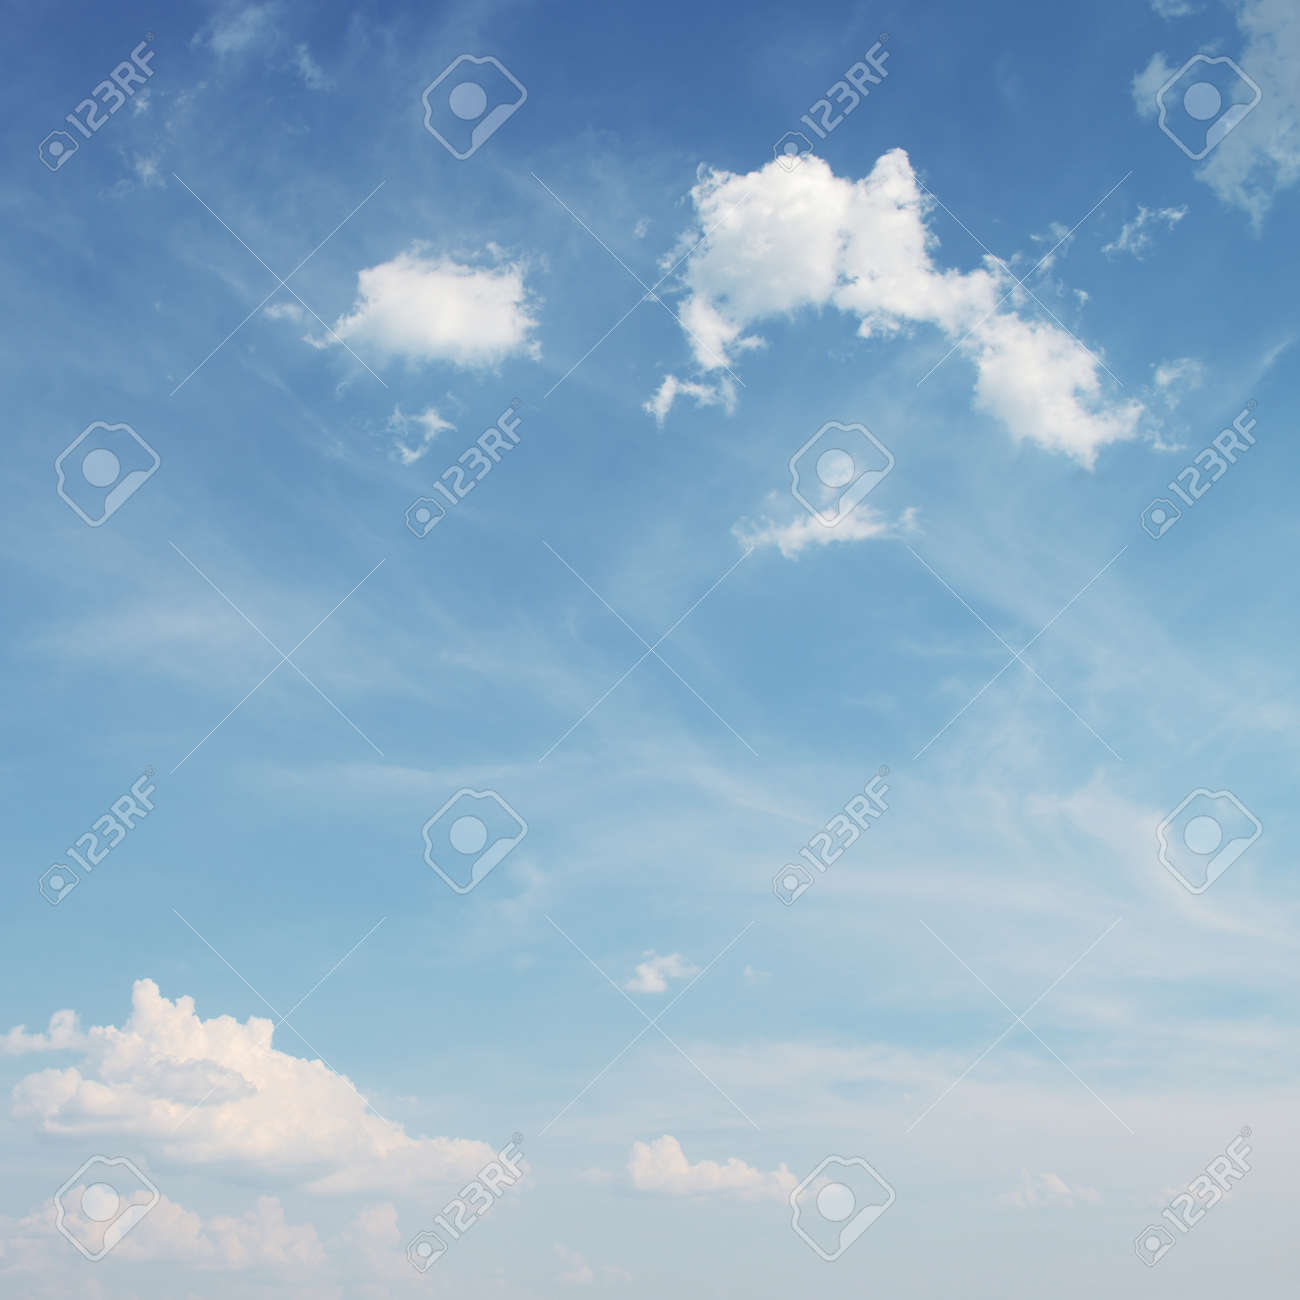 Blue sky with white clouds background - 37918478